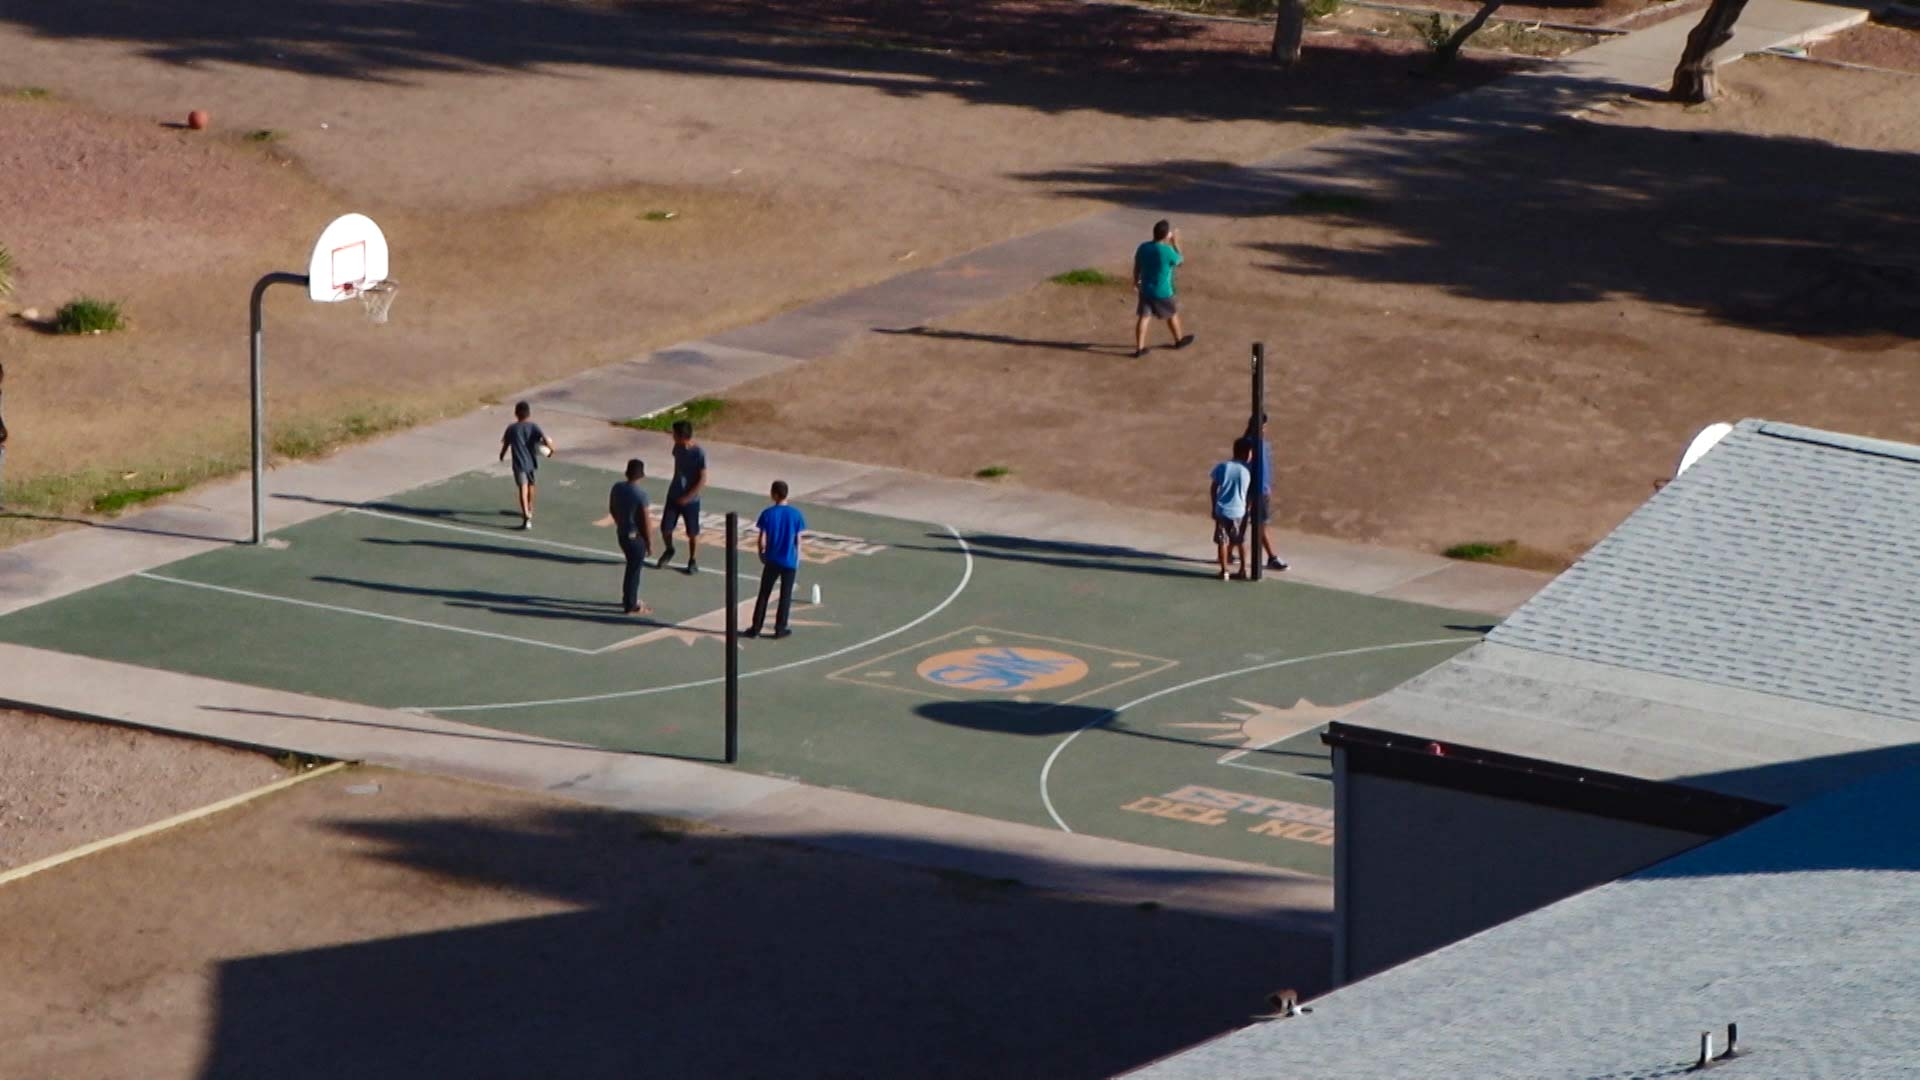 Kids play on a basketball court at the Southwest Key facility in Tucson, July 7, 2018